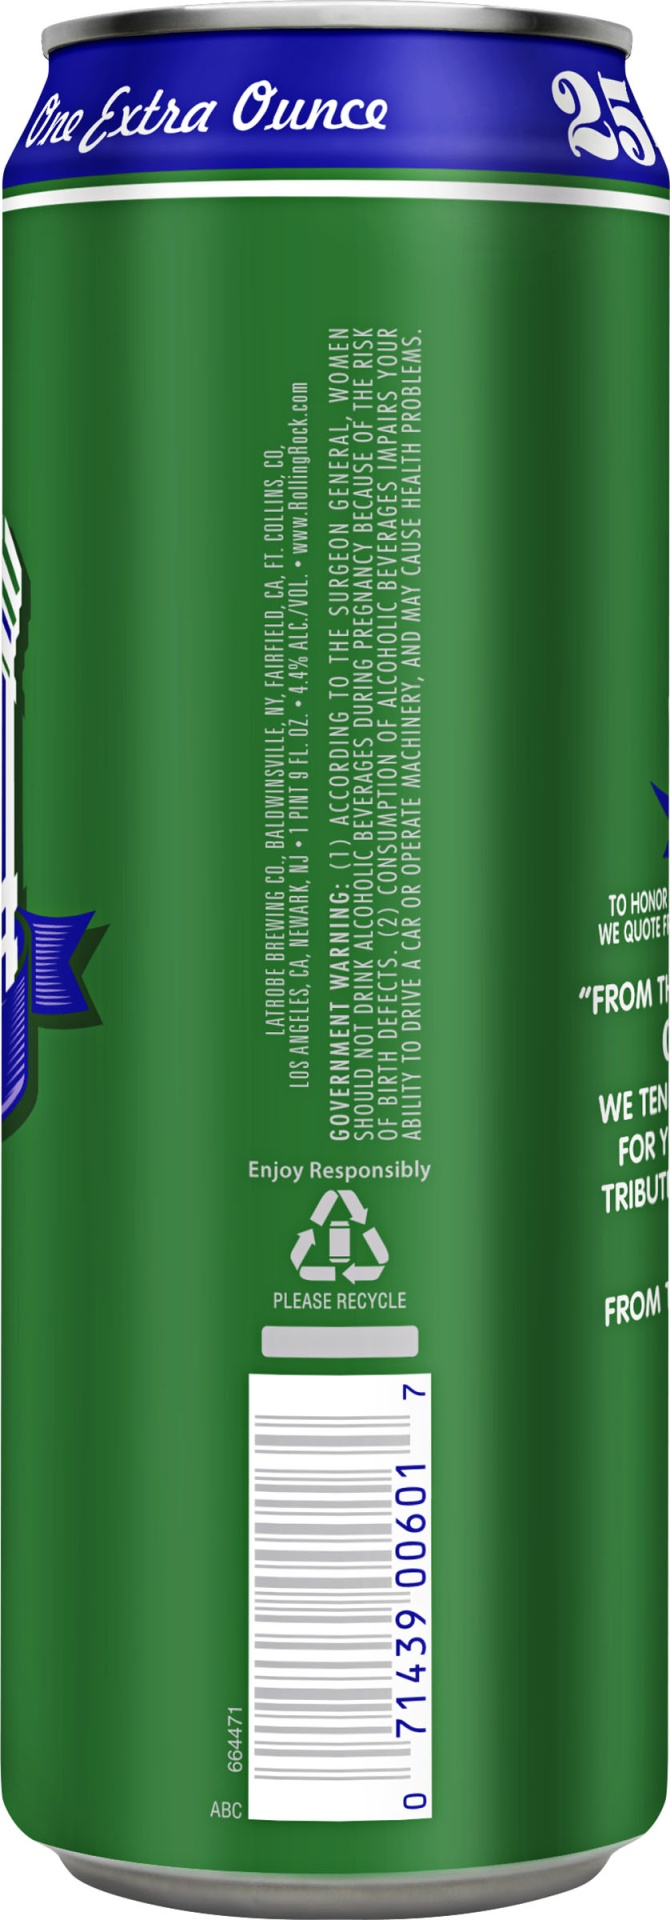 slide 4 of 4, Rolling Rock Extra Pale,